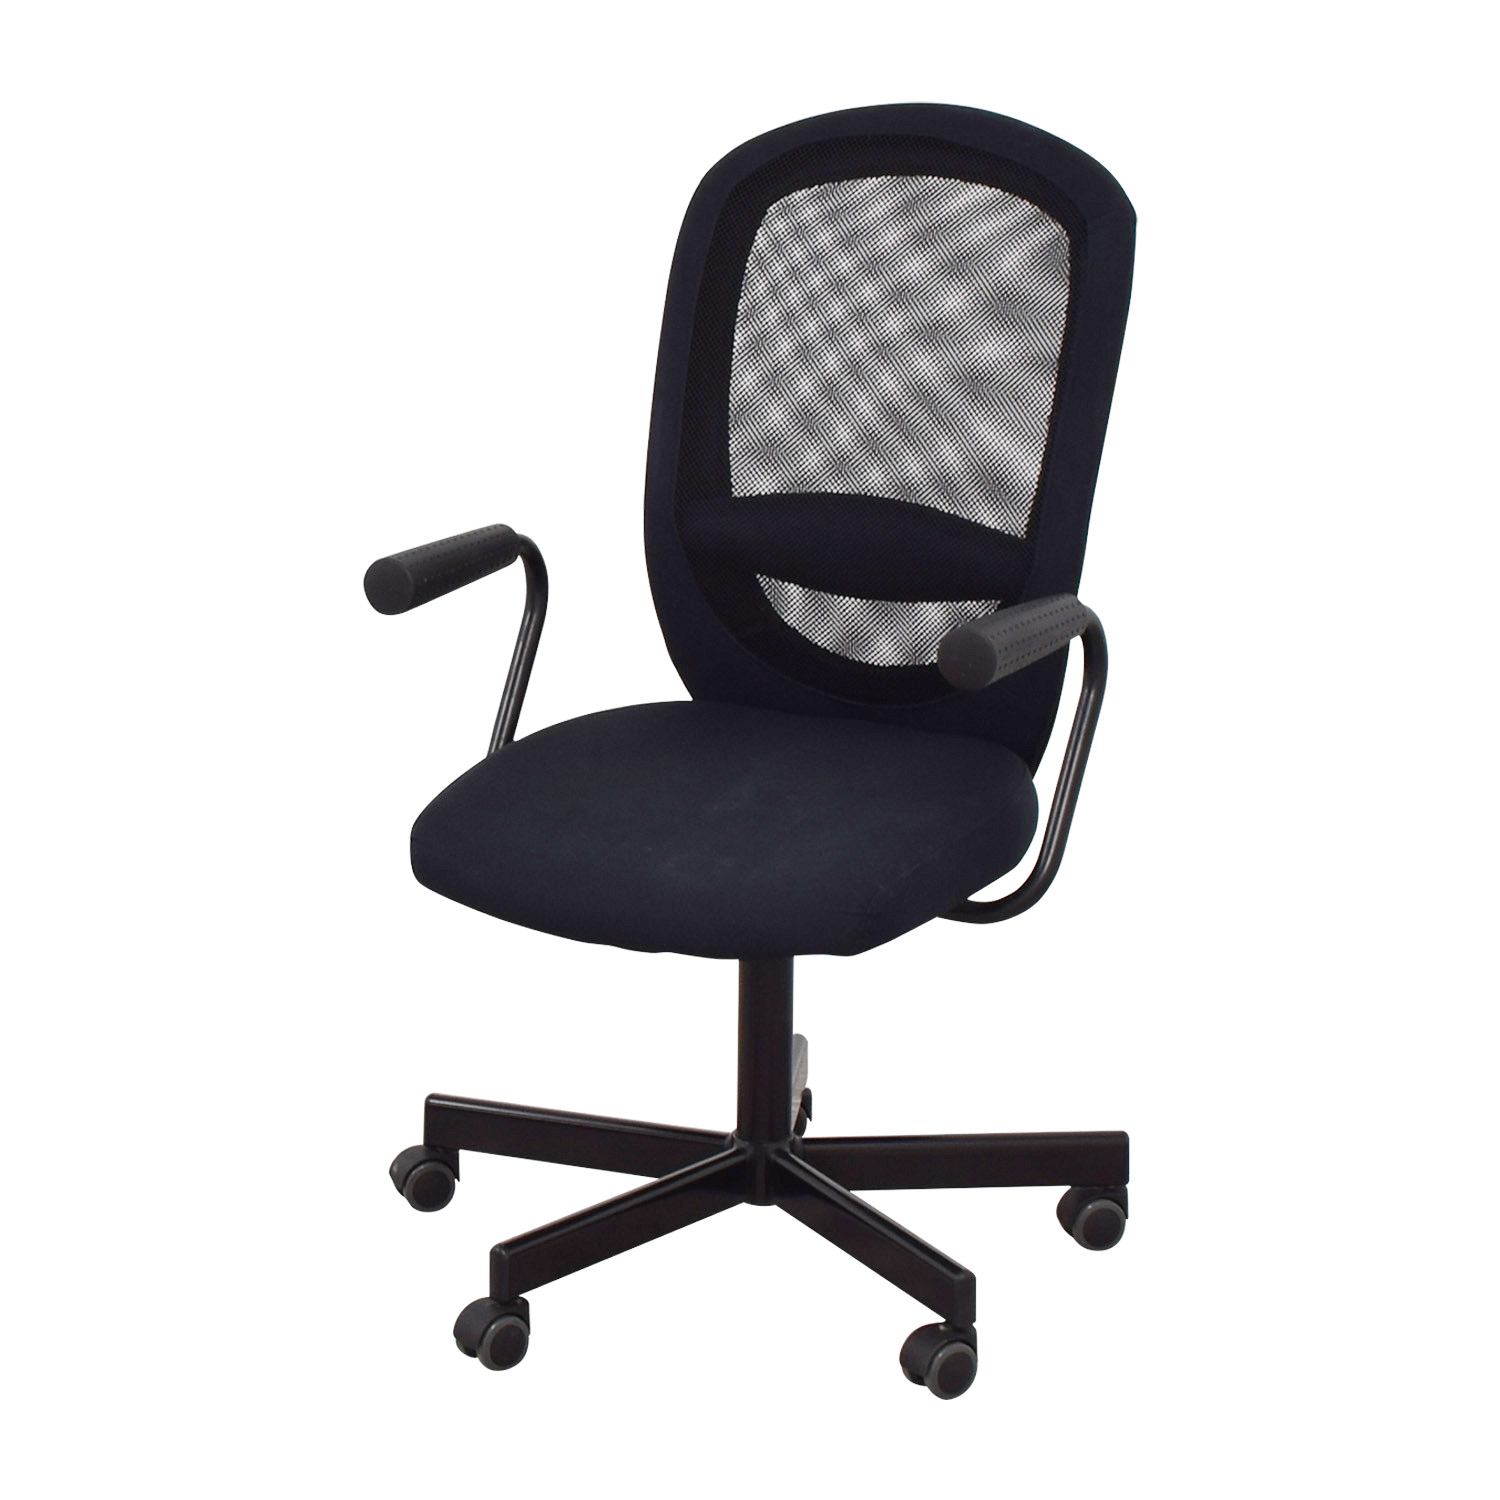 buy Flitan Nominell Swivel Chair with Armrests Flitan Nominell Home Office Chairs